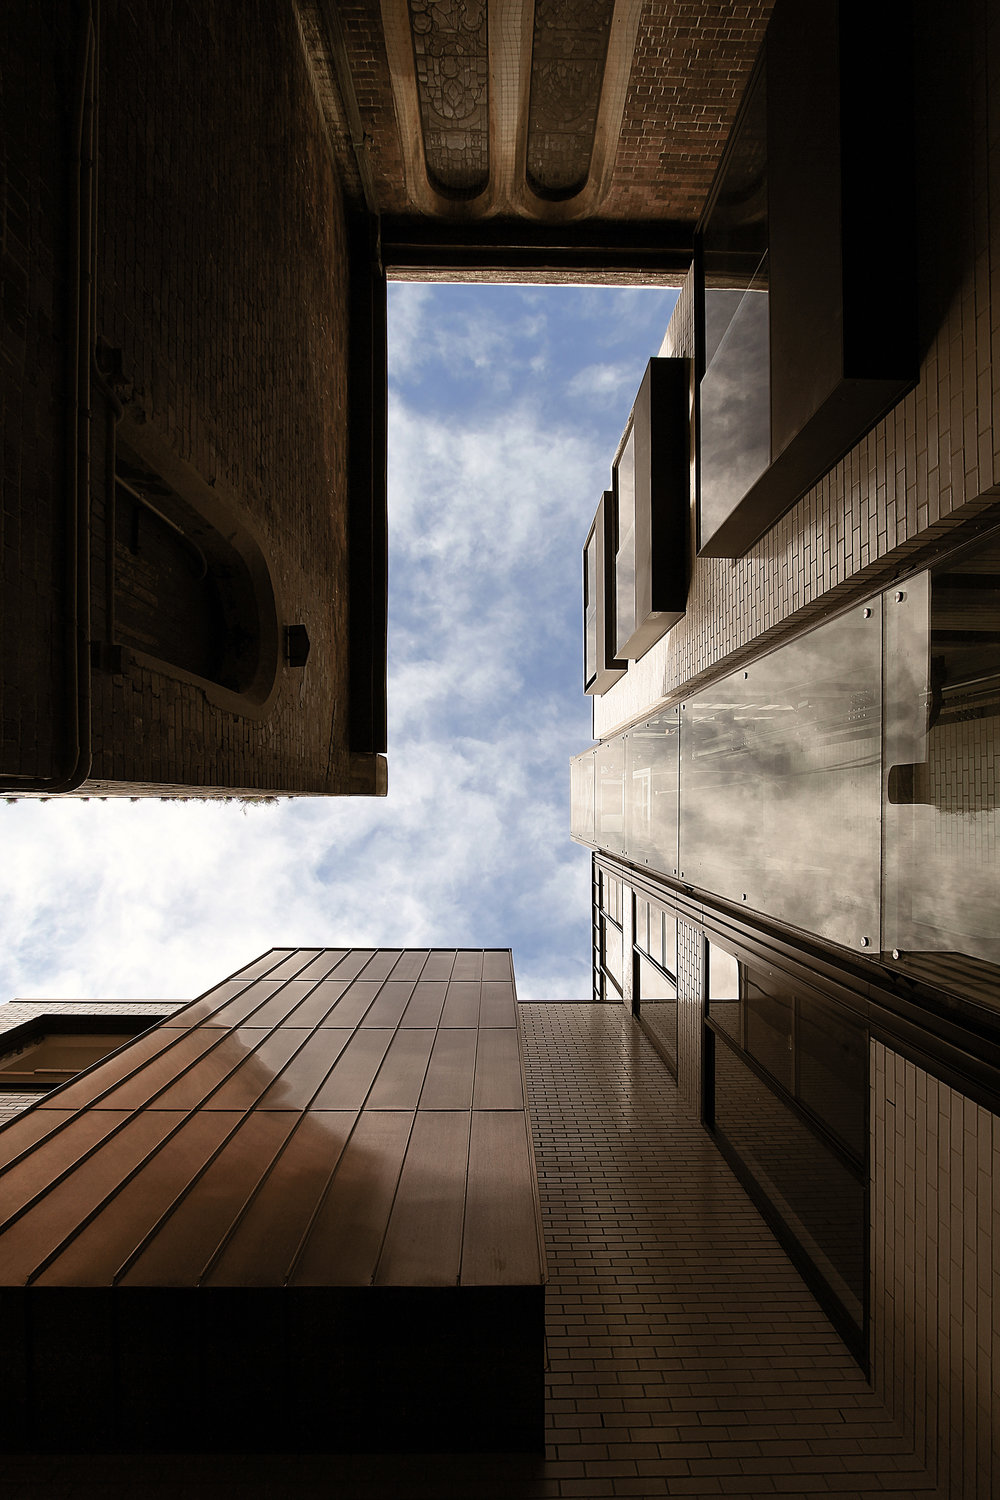 ARCHITECTURE - A MICROCOSM OF ECLECTIC SURRY HILLS